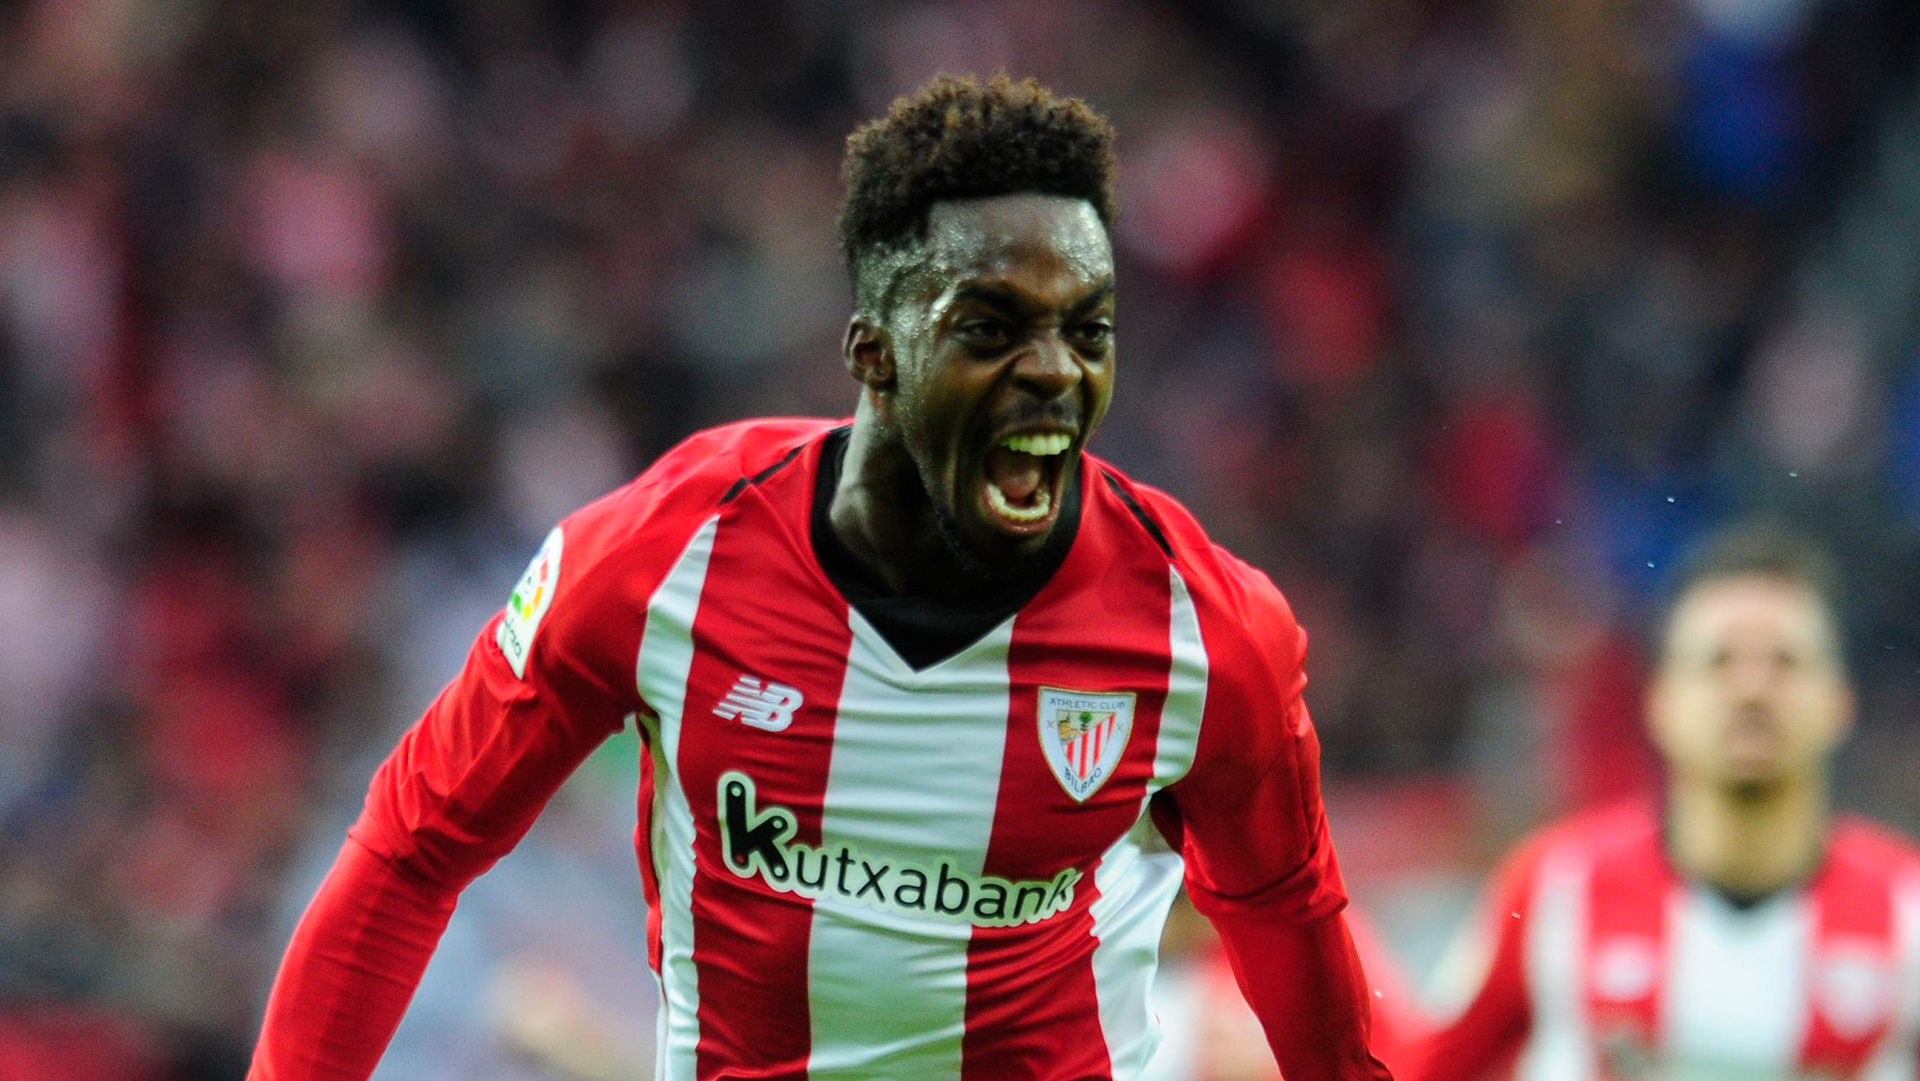 Williams, key player in the previous Athletic-Sevilla